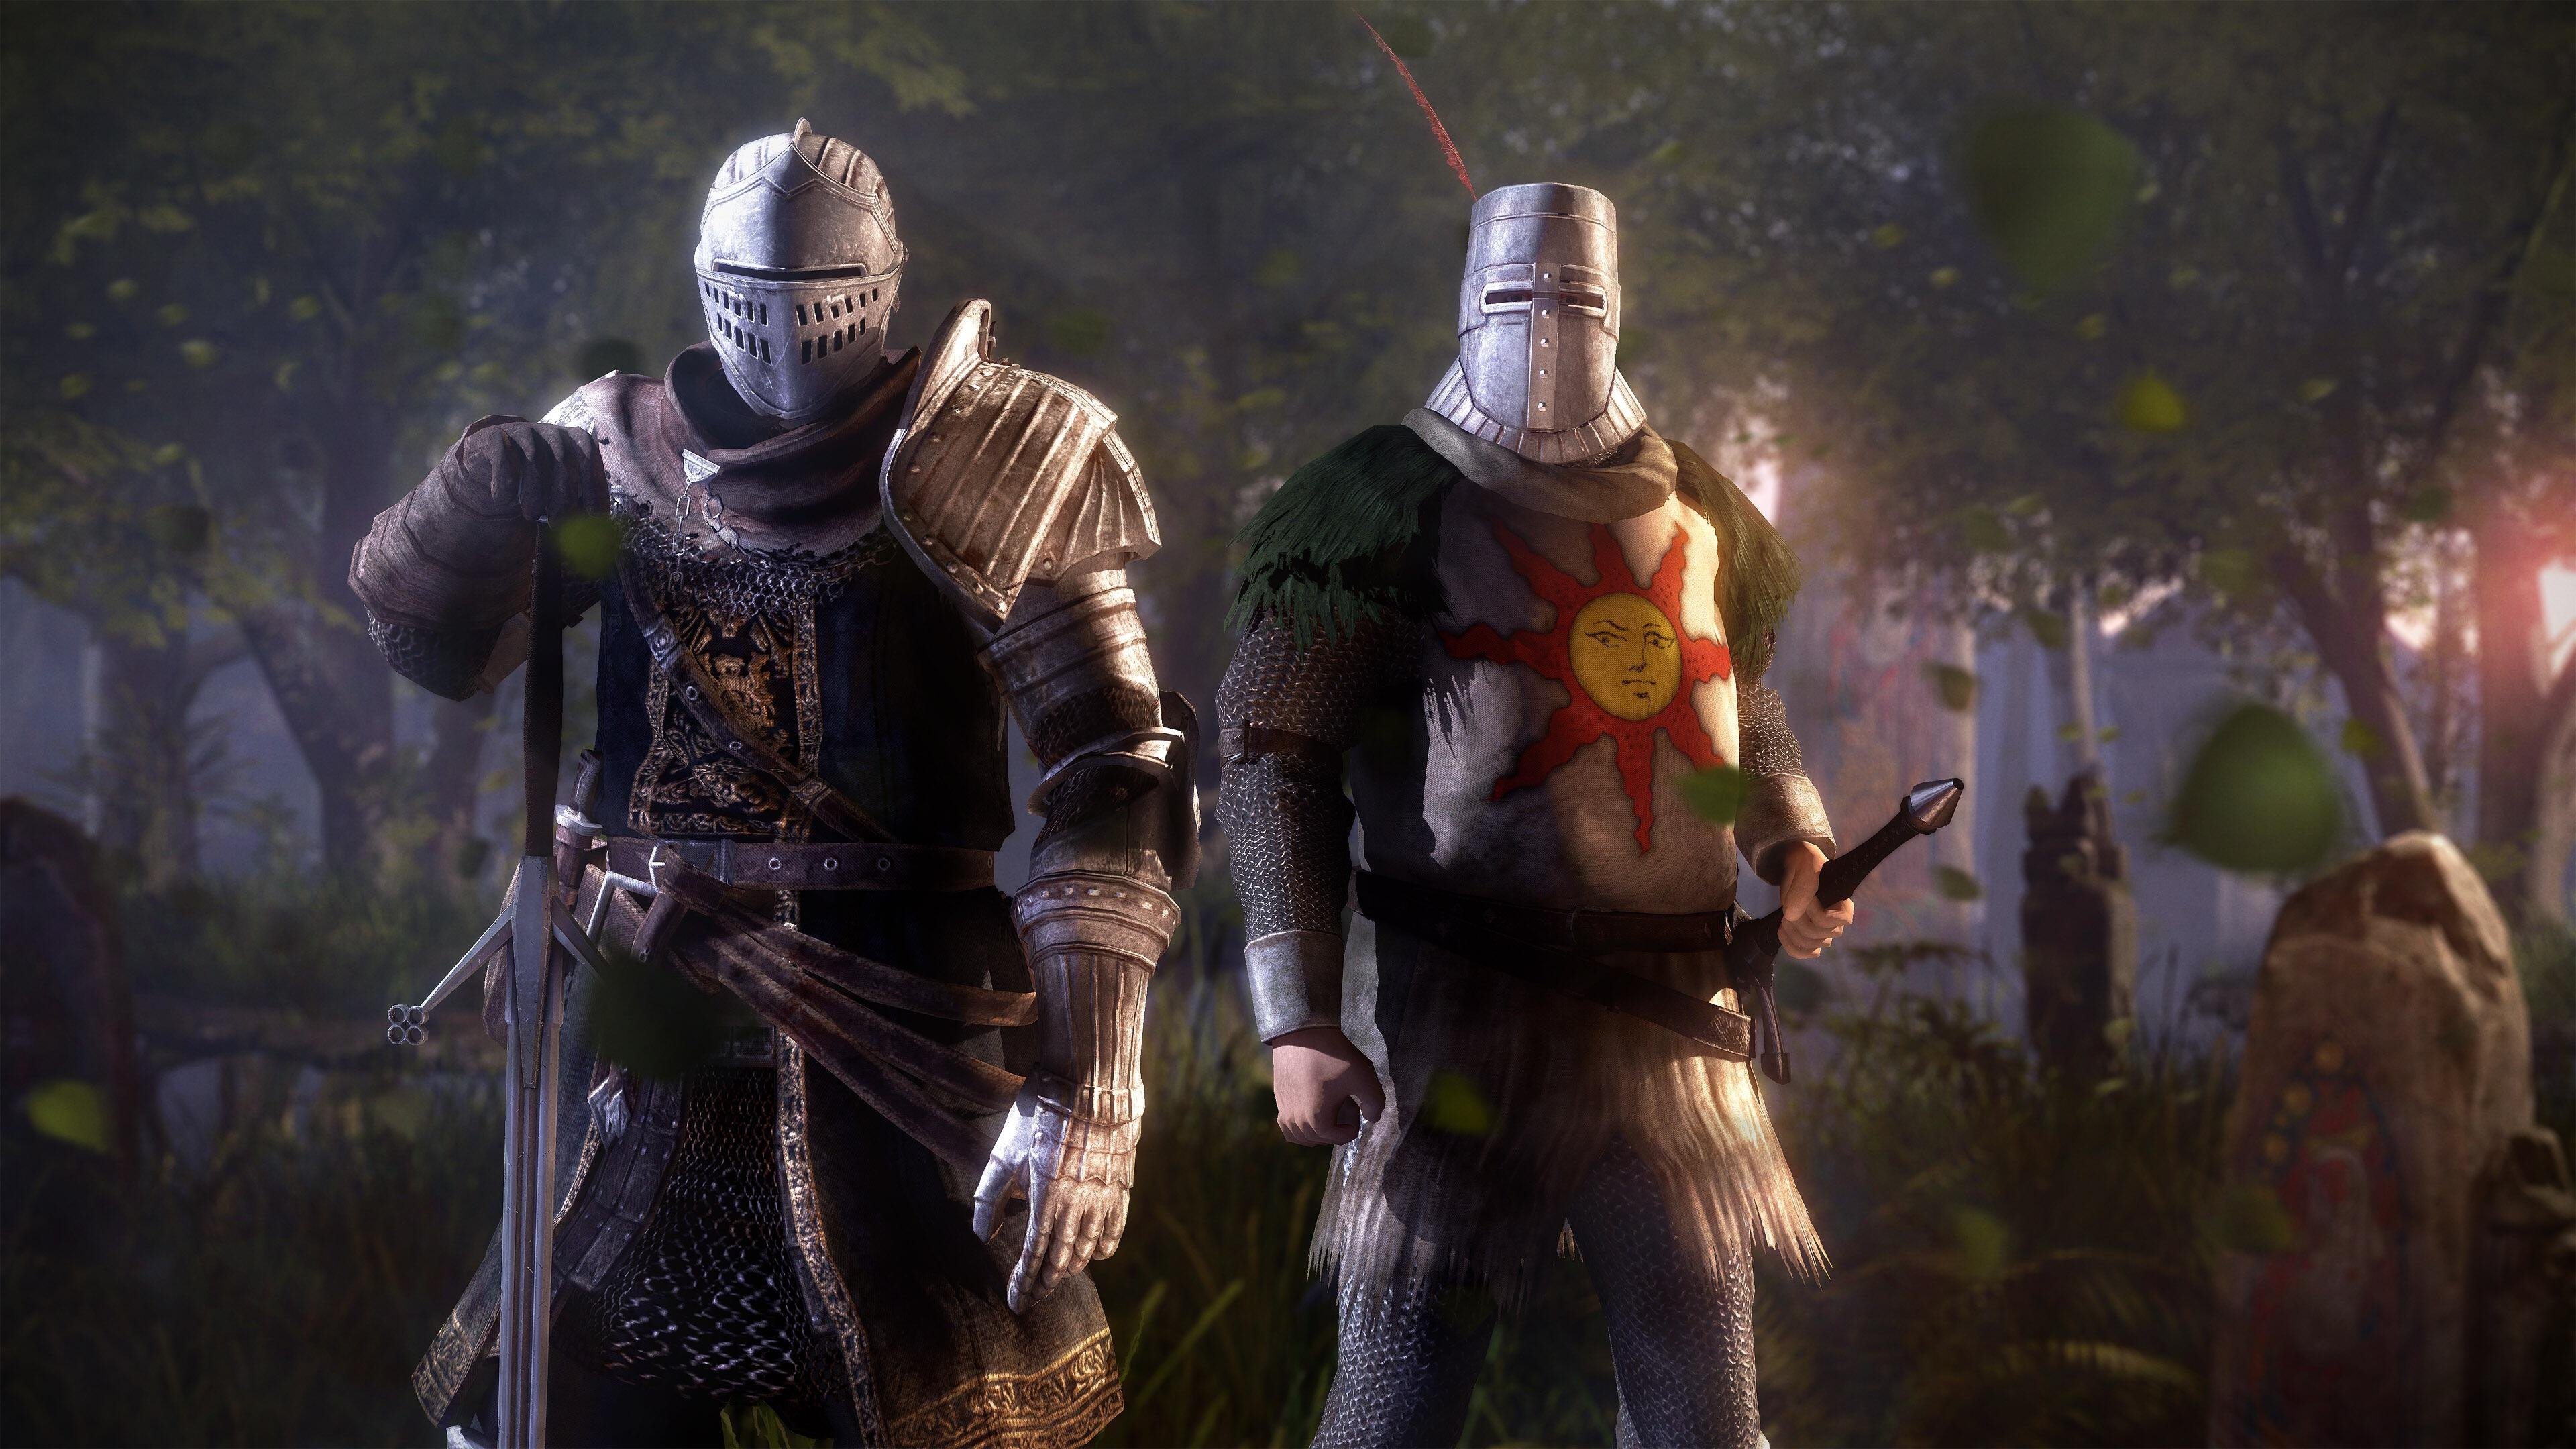 Souls Wallpapers Photos And Desktop Backgrounds Up To 8K 7680x4320